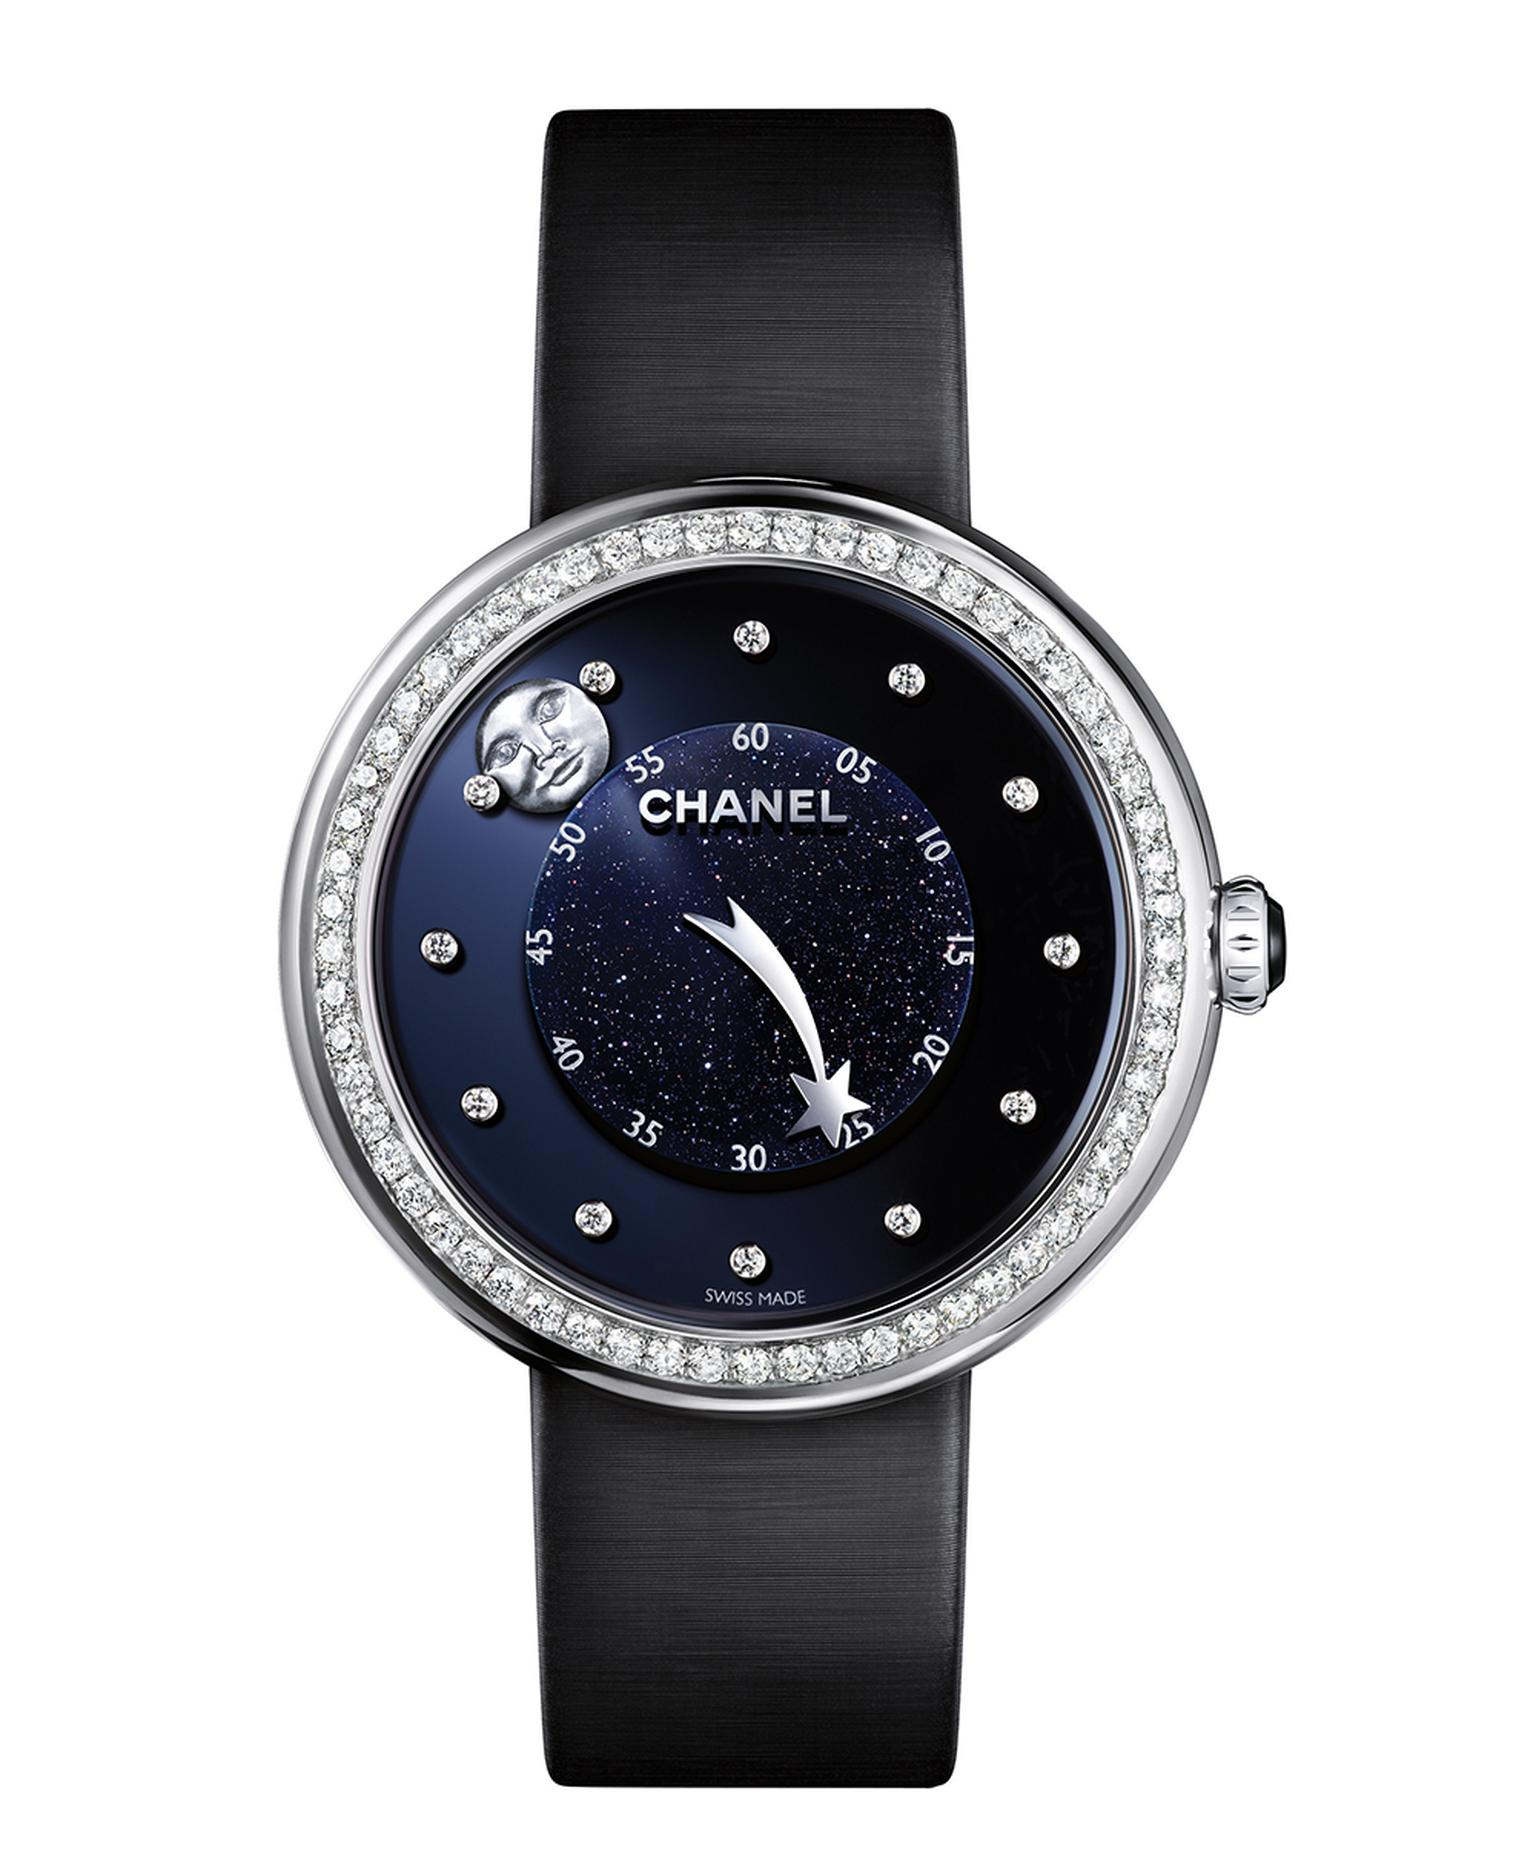 Mademoiselle-Prive-Moon-and-Comet-Dial-FB-baselworld.jpg